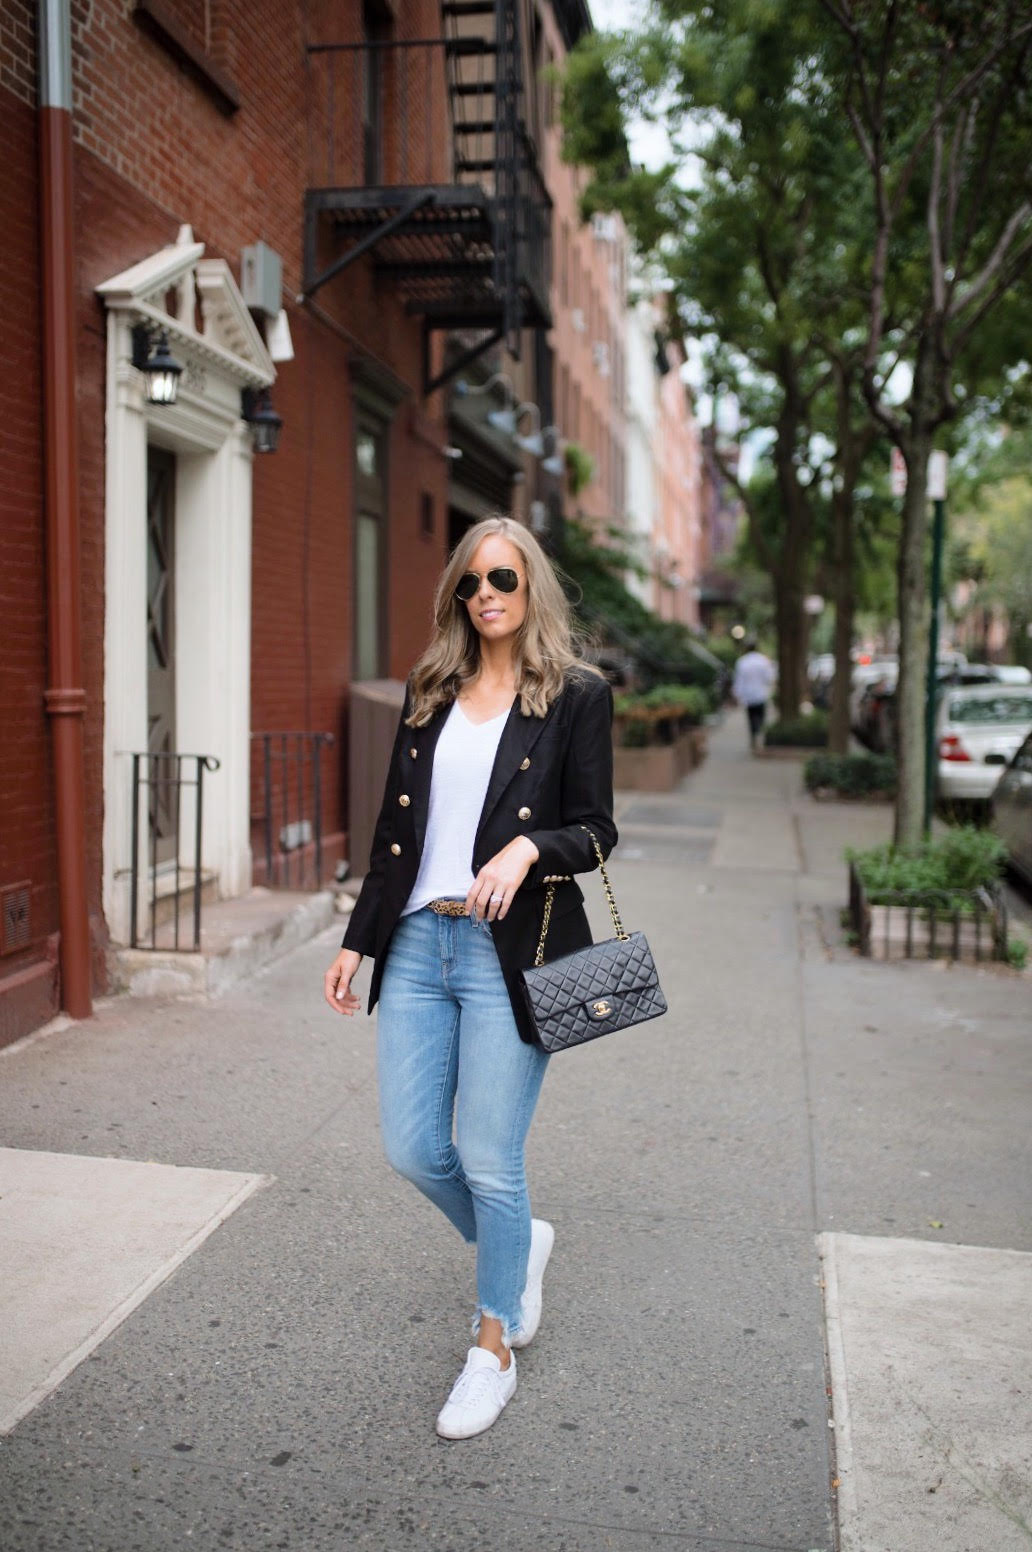 24a3577d348e casual outfit ideas blue distressed jeans white sneakers balmain blazer  chanel bag fashion blogger new york